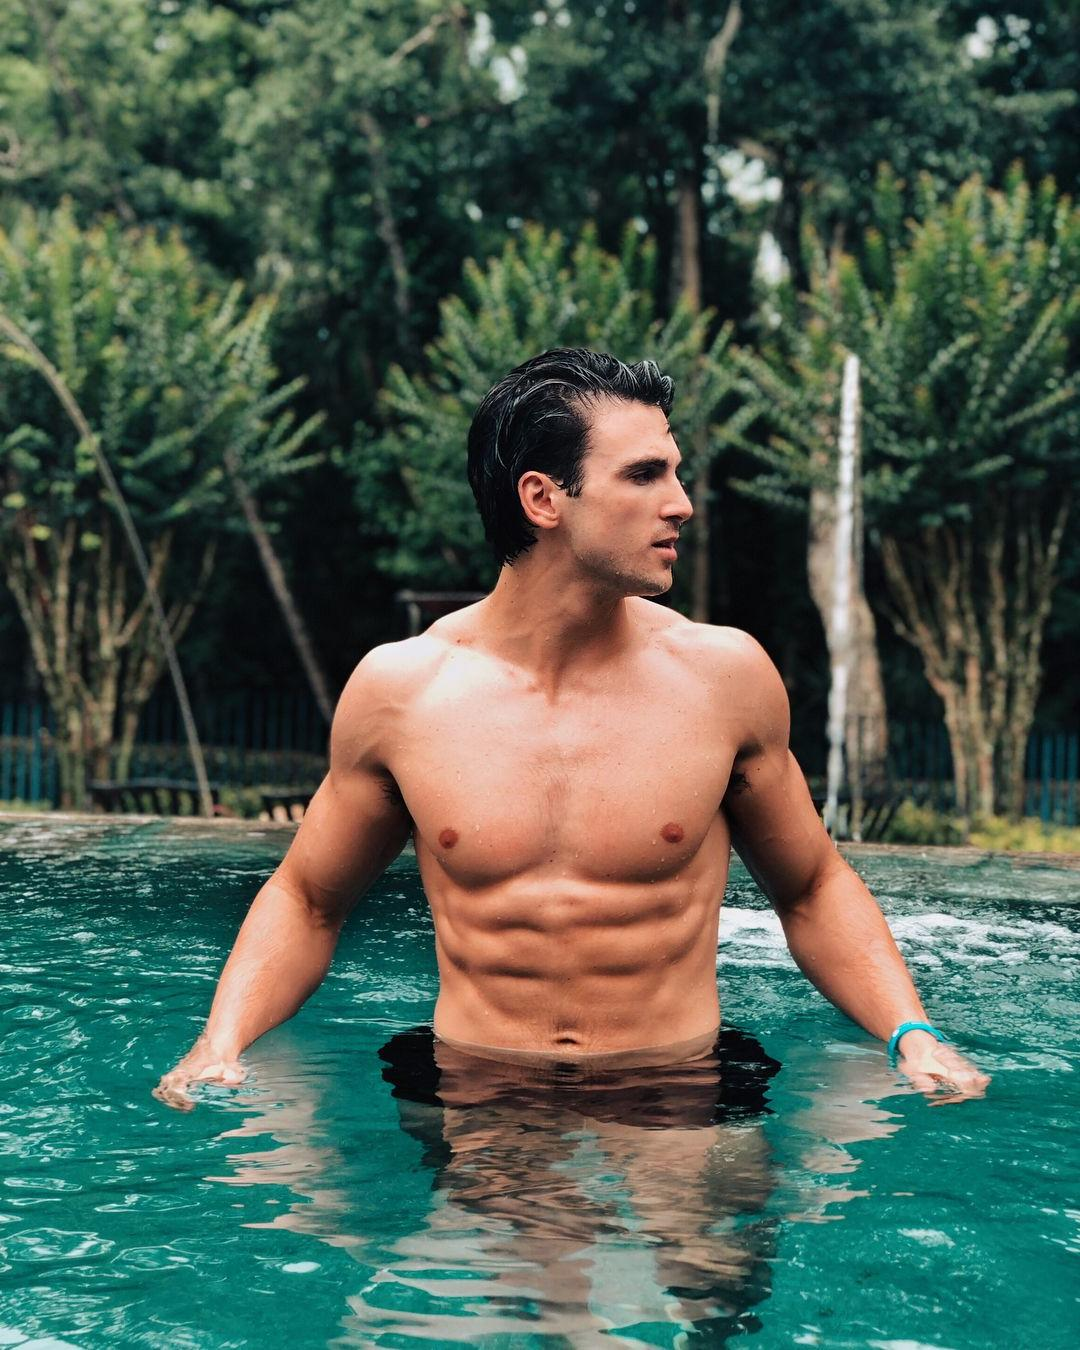 fit-young-guys-wet-body-jeremy-hershberg-pool-swimming-dark-hair-hunk